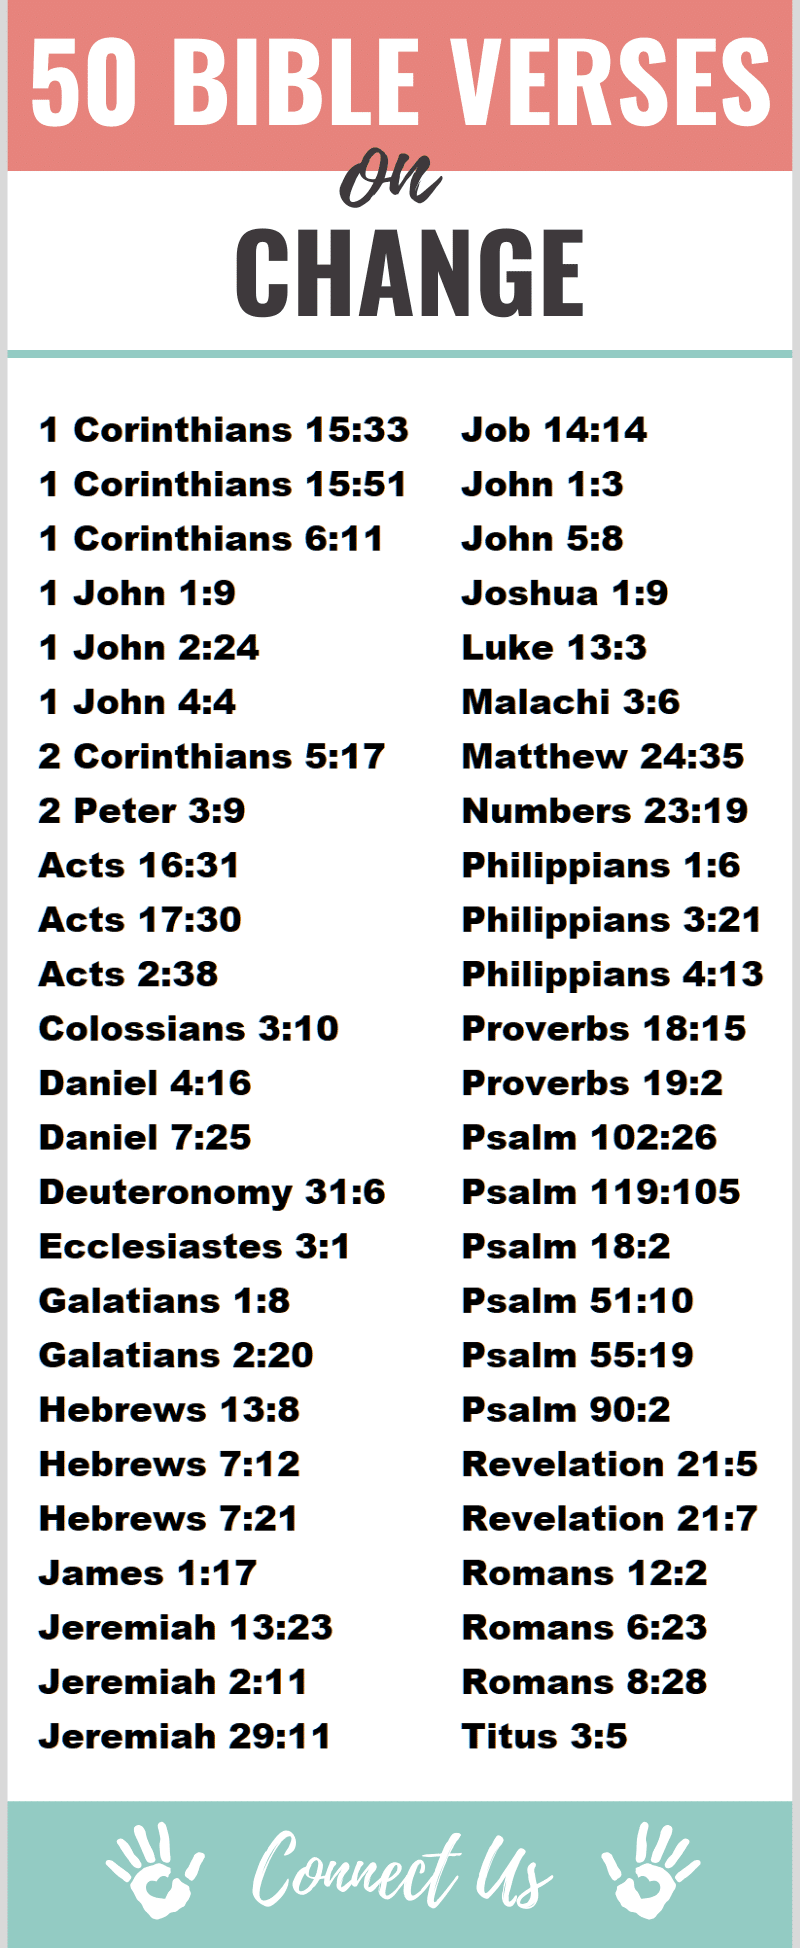 Bible Verses on Change